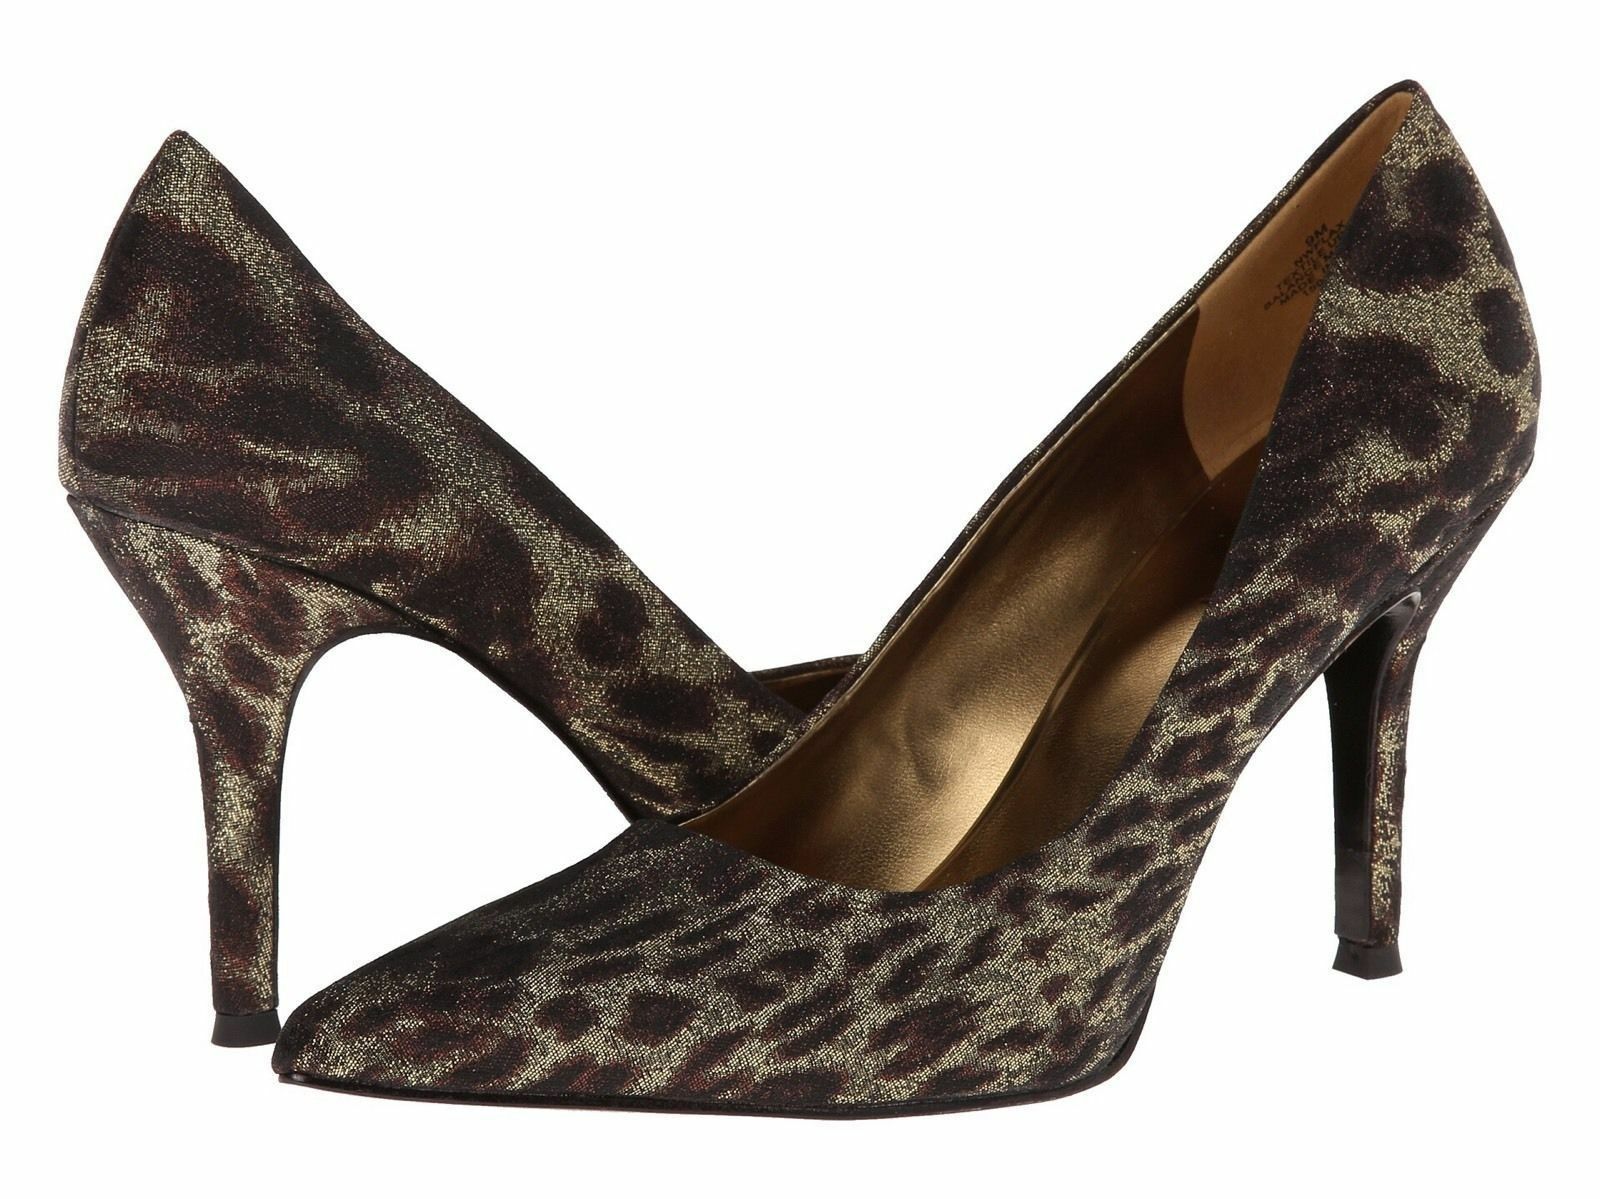 Nine West Flax Bronze Gold Animal Classics Heal Pointy Toe Pump Schuhes 7 M USA